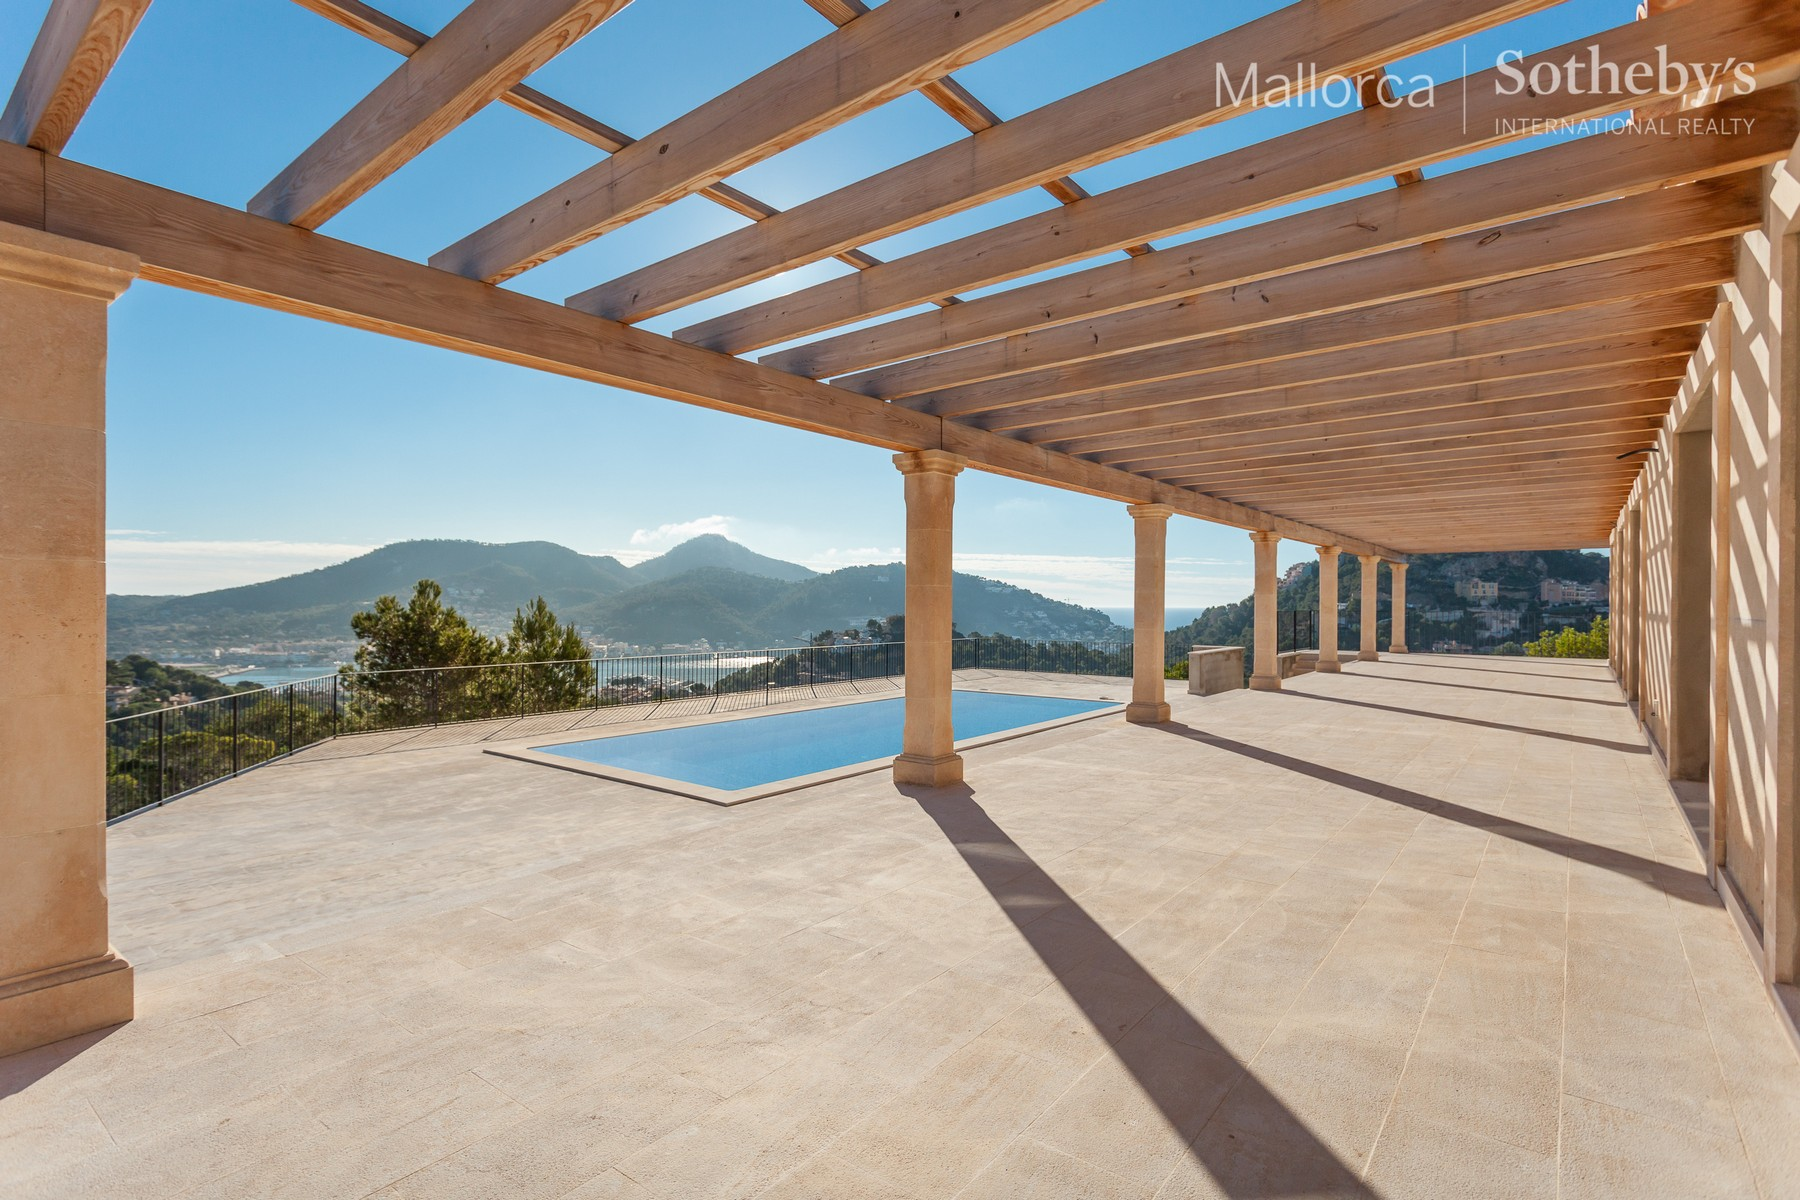 Single Family Home for Sale at Villa with panoramic views of Port Andratx Port Andratx, Mallorca 07157 Spain